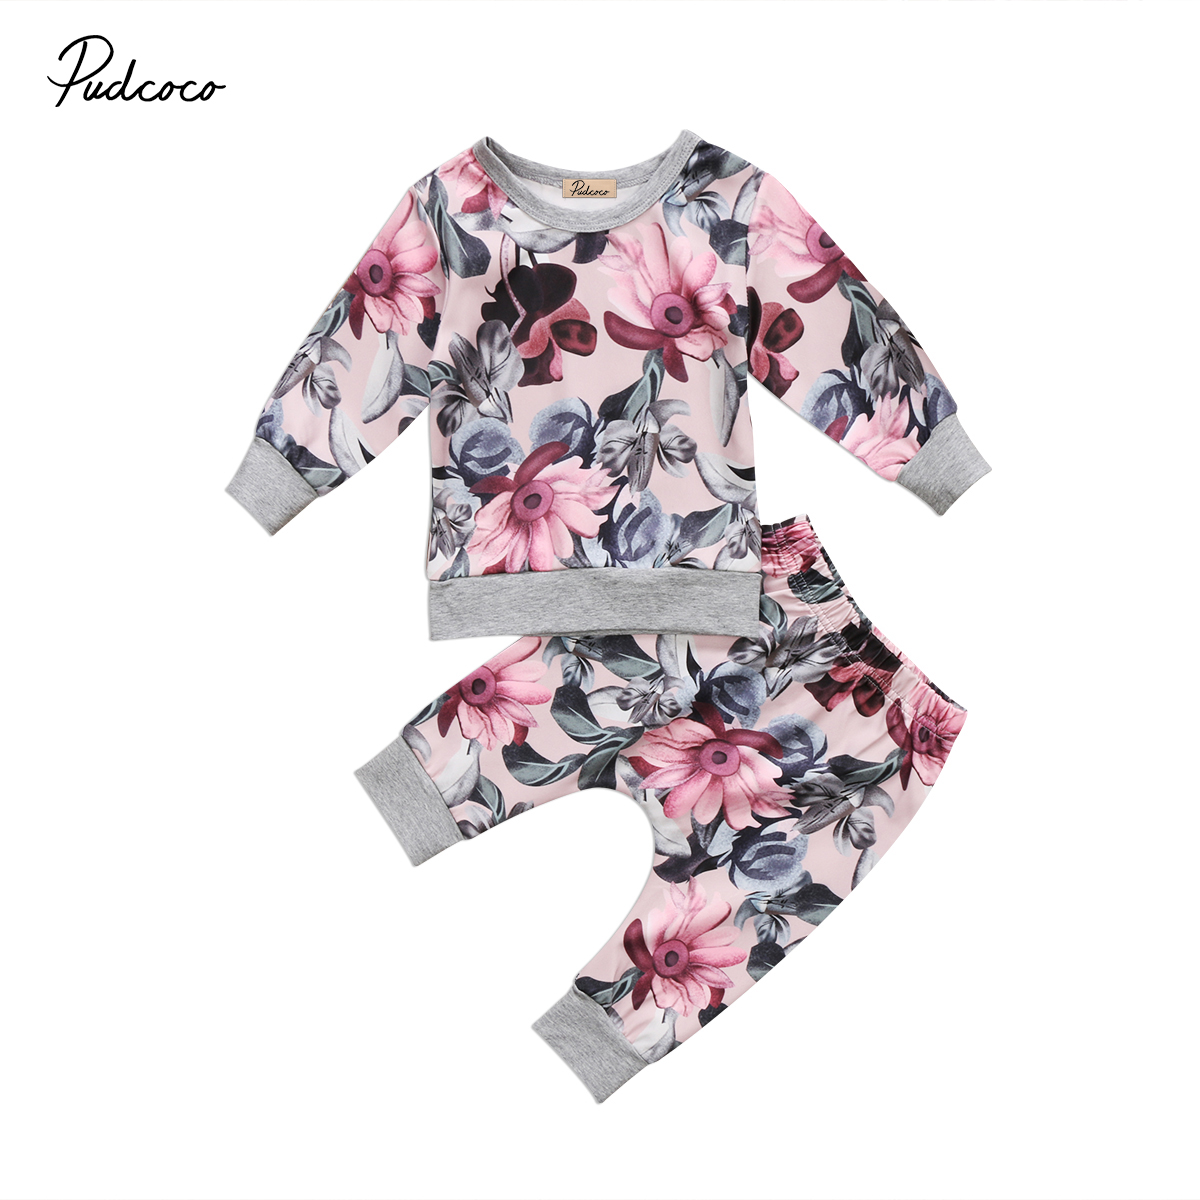 2pcs Newborn Baby Kids Girls Floral Clothes Set Long Sleeve Coats T-shirt Tops Floral Pants Outfits Set newborn baby kids boys tops cool letter printing i do what i want sleeveless t shirt vest short pants 2pcs outfits set clothes